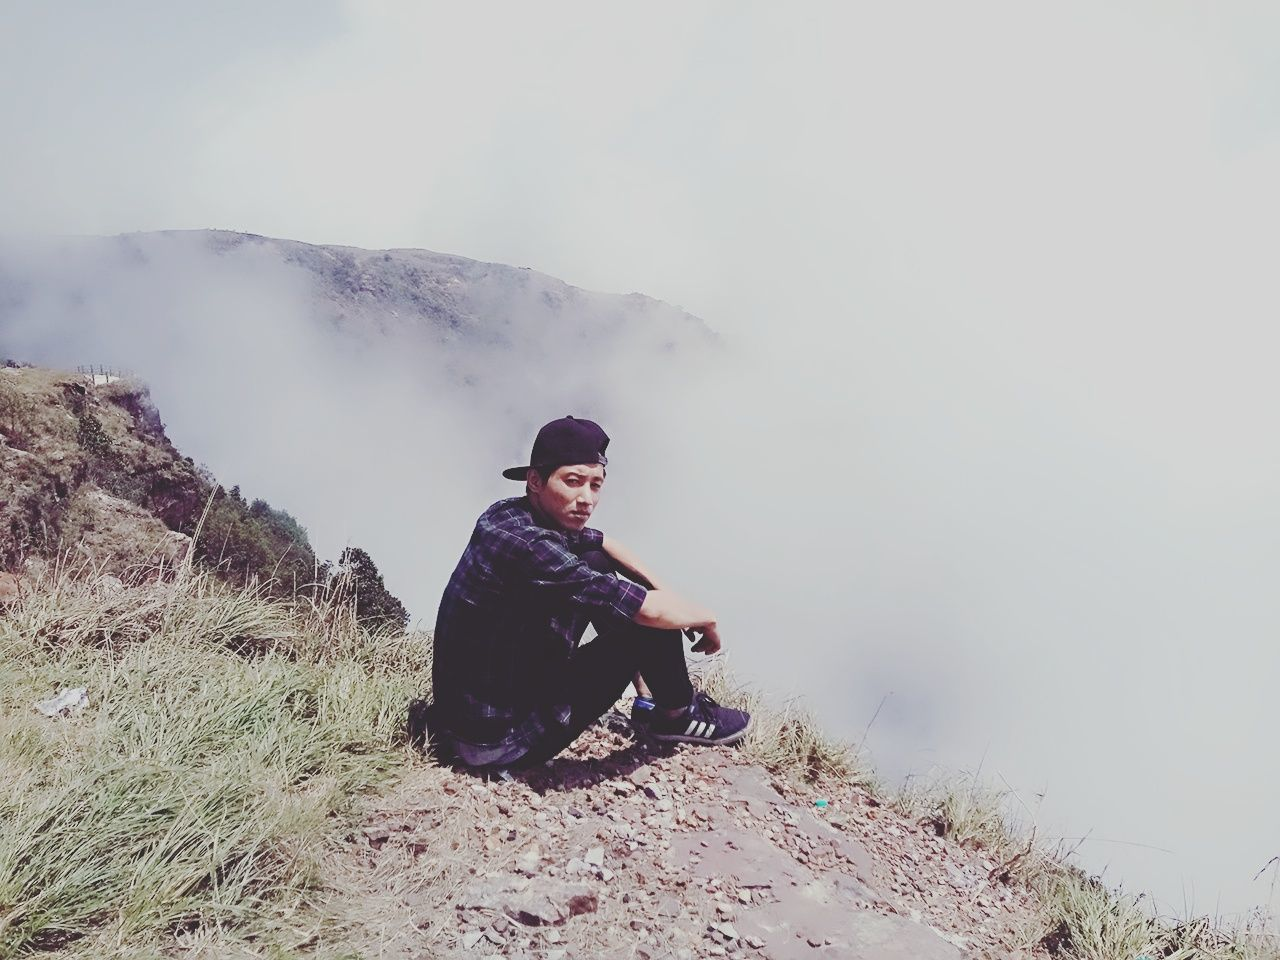 real people, mountain, sitting, one person, nature, leisure activity, full length, backpack, beauty in nature, hiking, outdoors, young adult, lifestyles, day, fog, adventure, scenics, tranquility, young women, landscape, sky, people